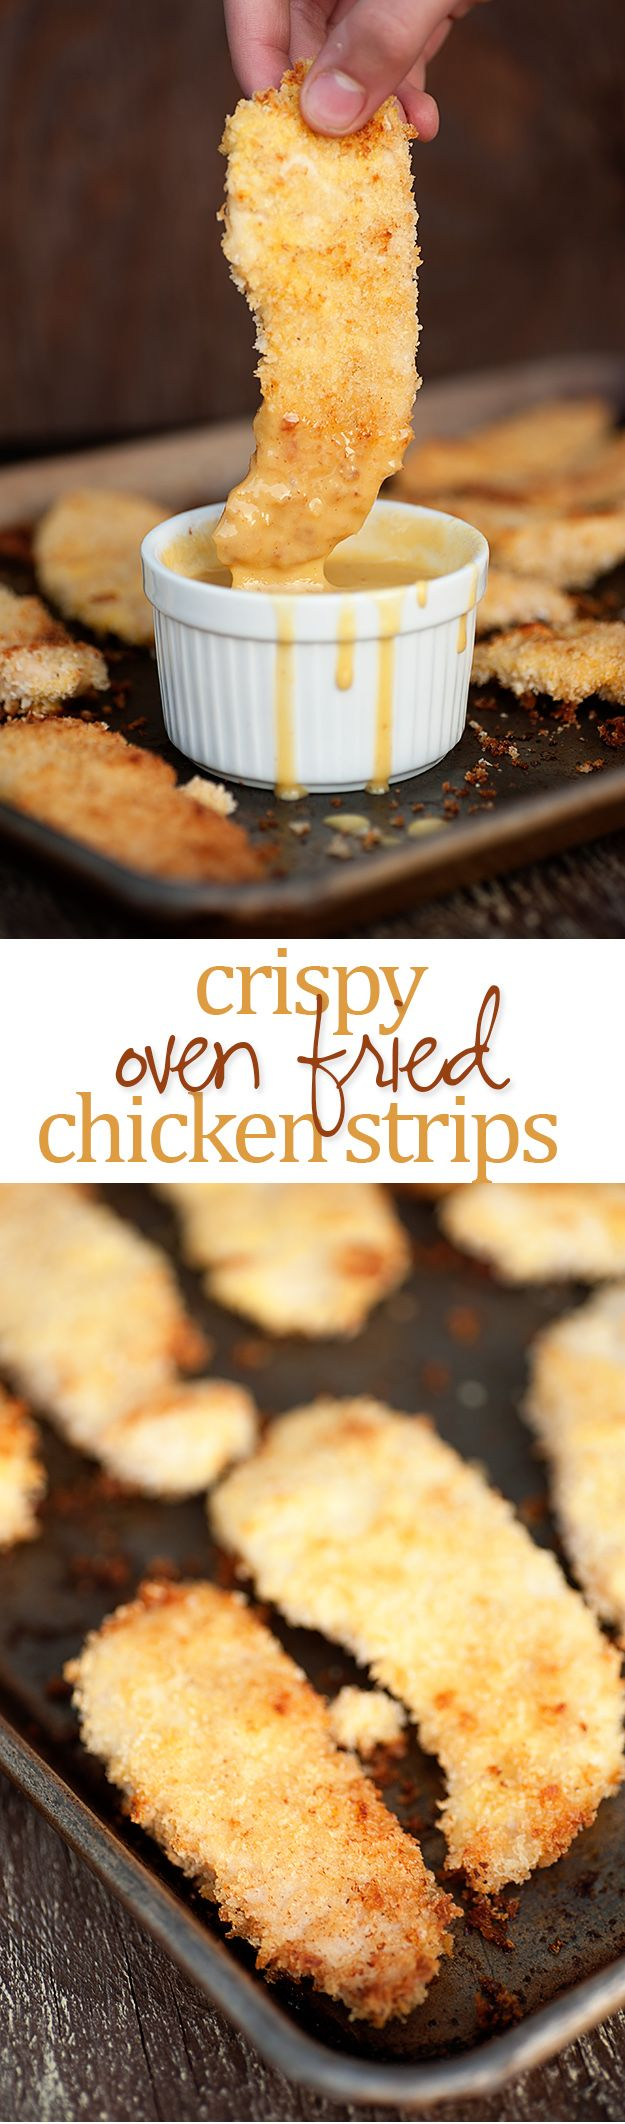 Oven Fried Chicken Strips